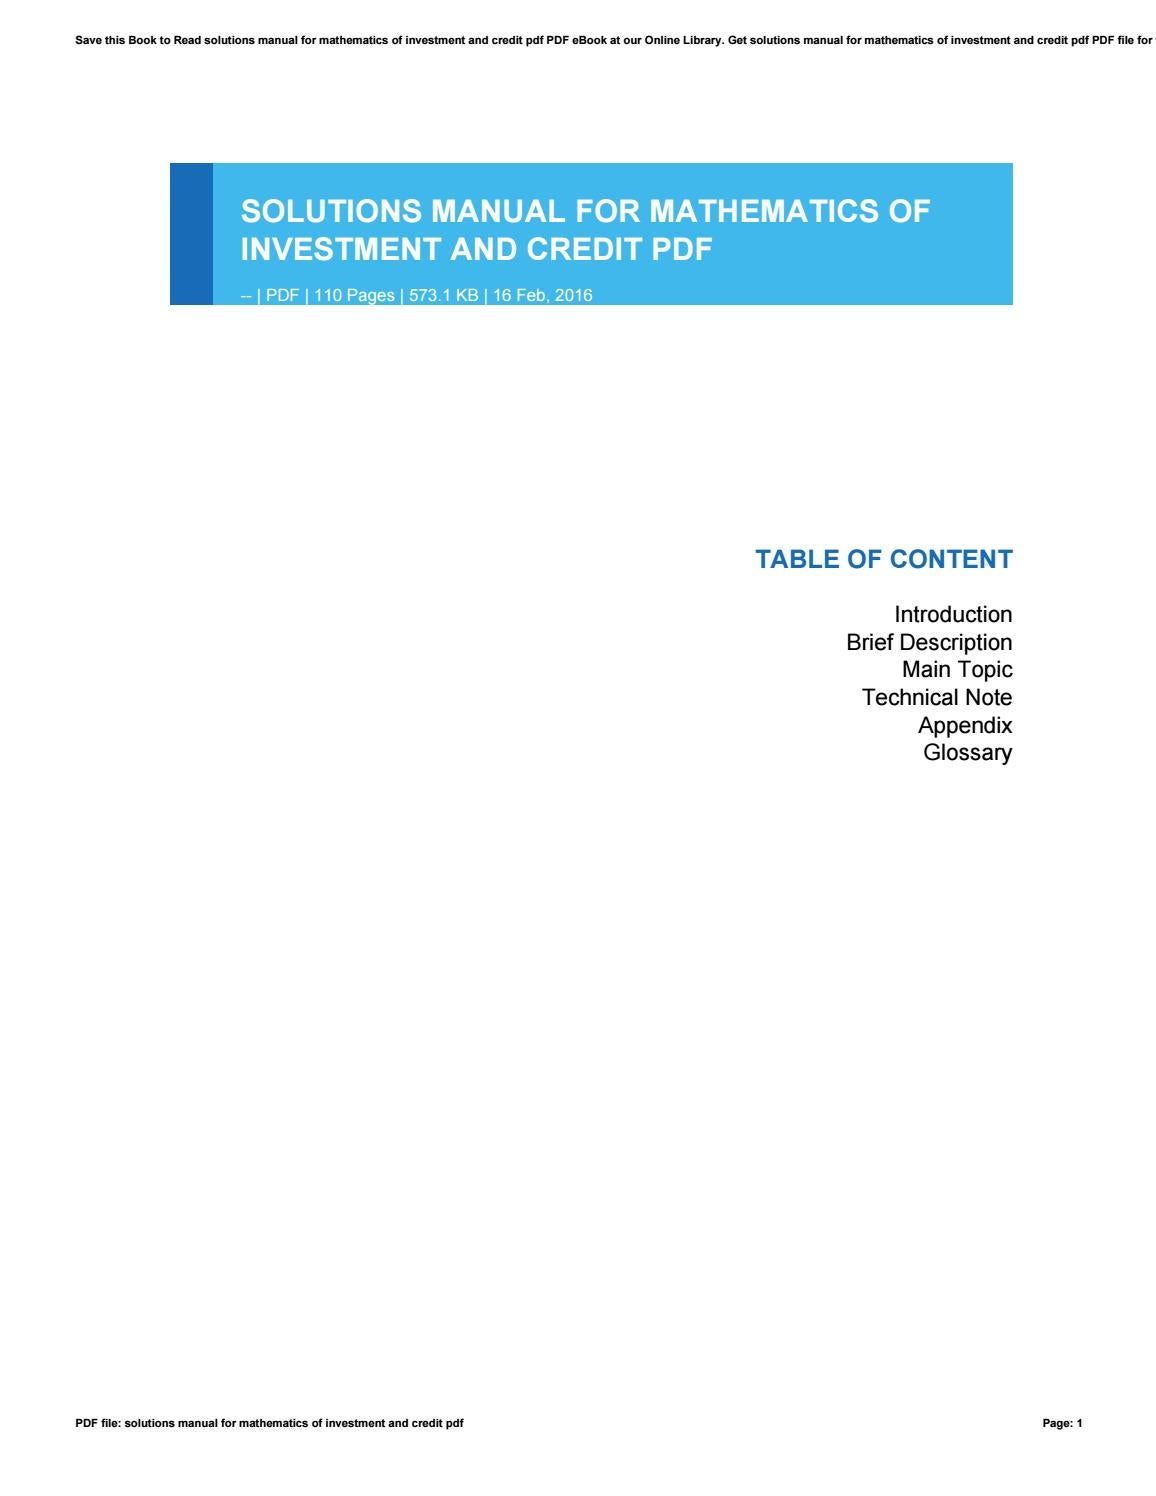 Solutions manuals mathematics ebook solution manualbasic principles array solutions manual for mathematics of investment and credit pdf by rh issuu com fandeluxe Choice Image